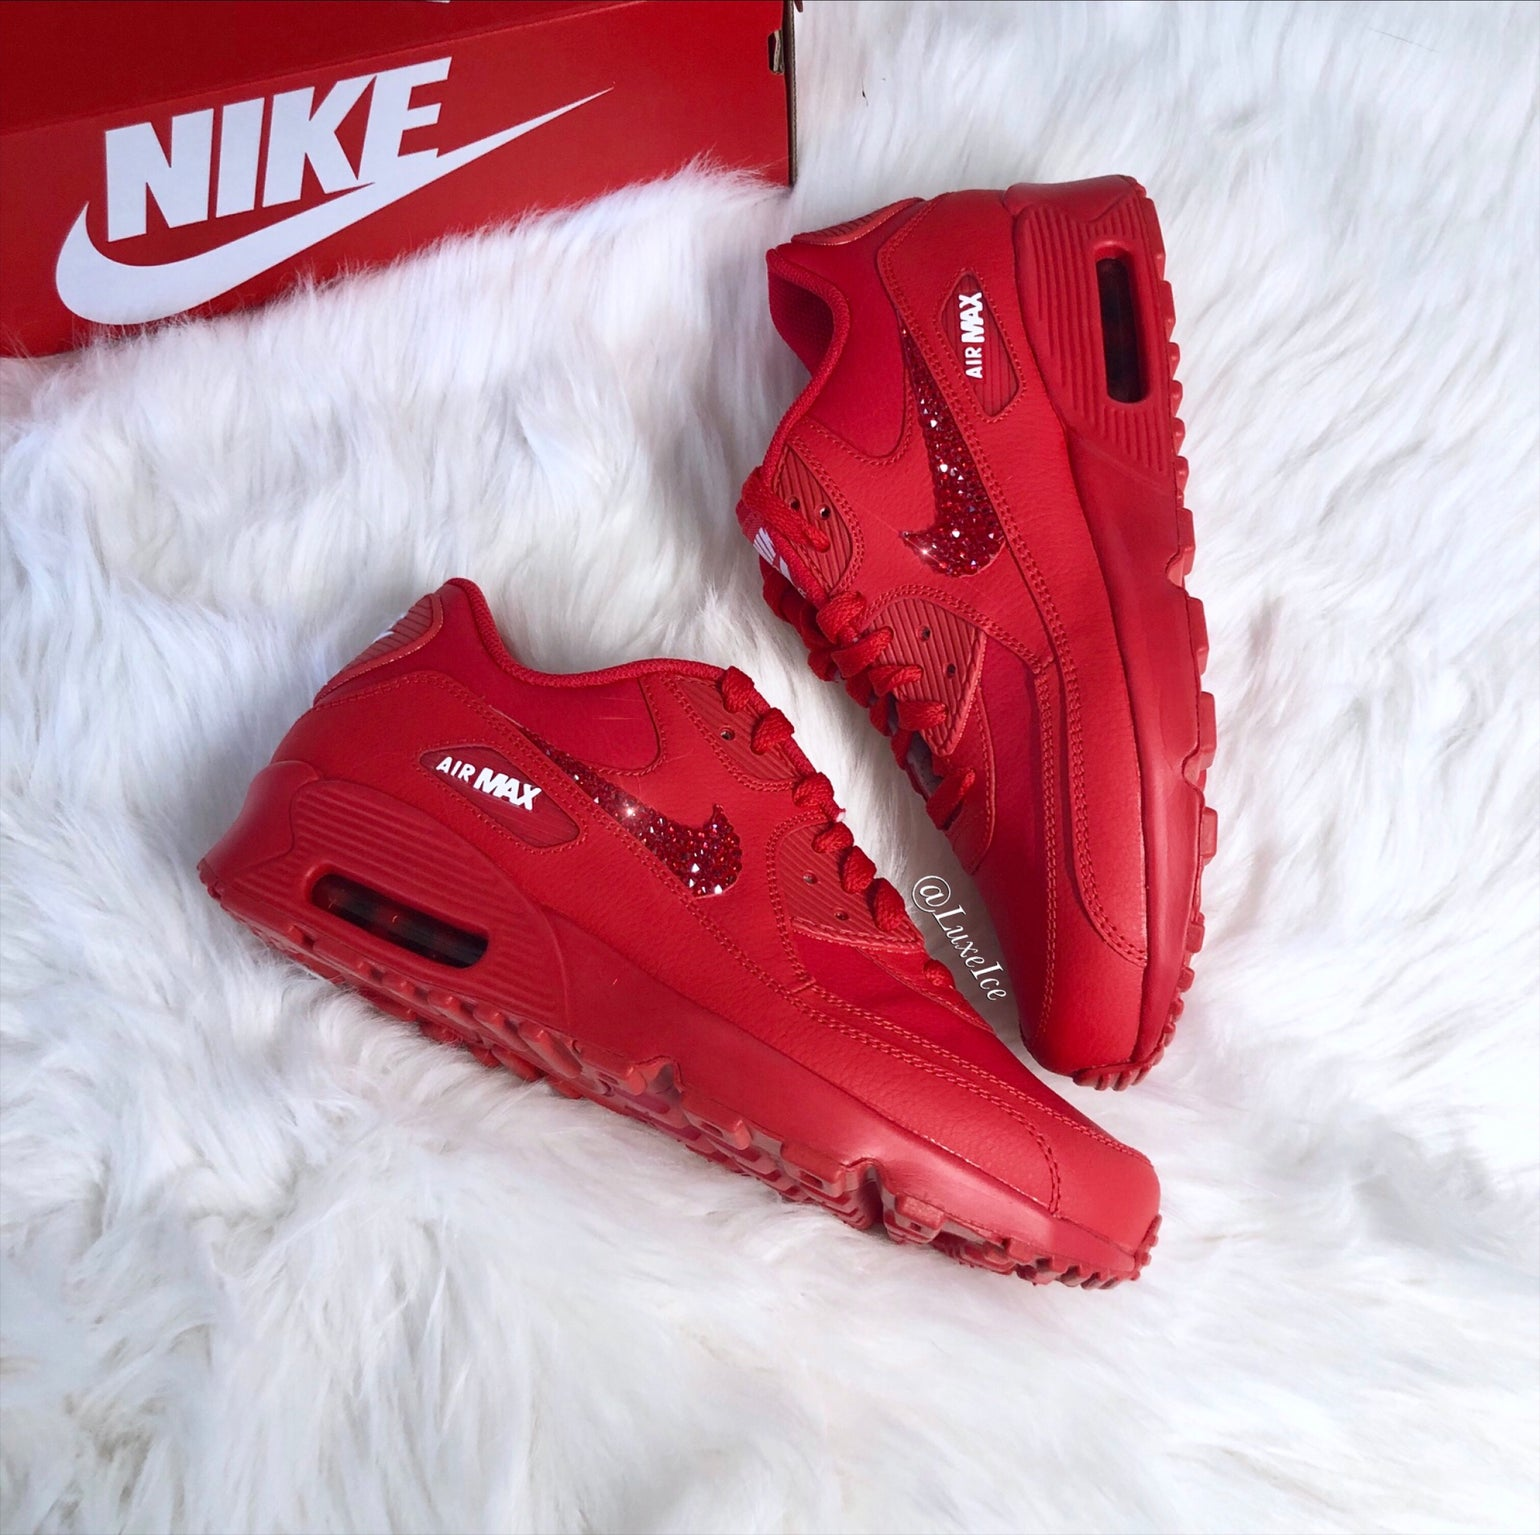 Image of Swarovski Nike Air Max 90 Casual Shoes Red customized with SWAROVSKI® Crystals.